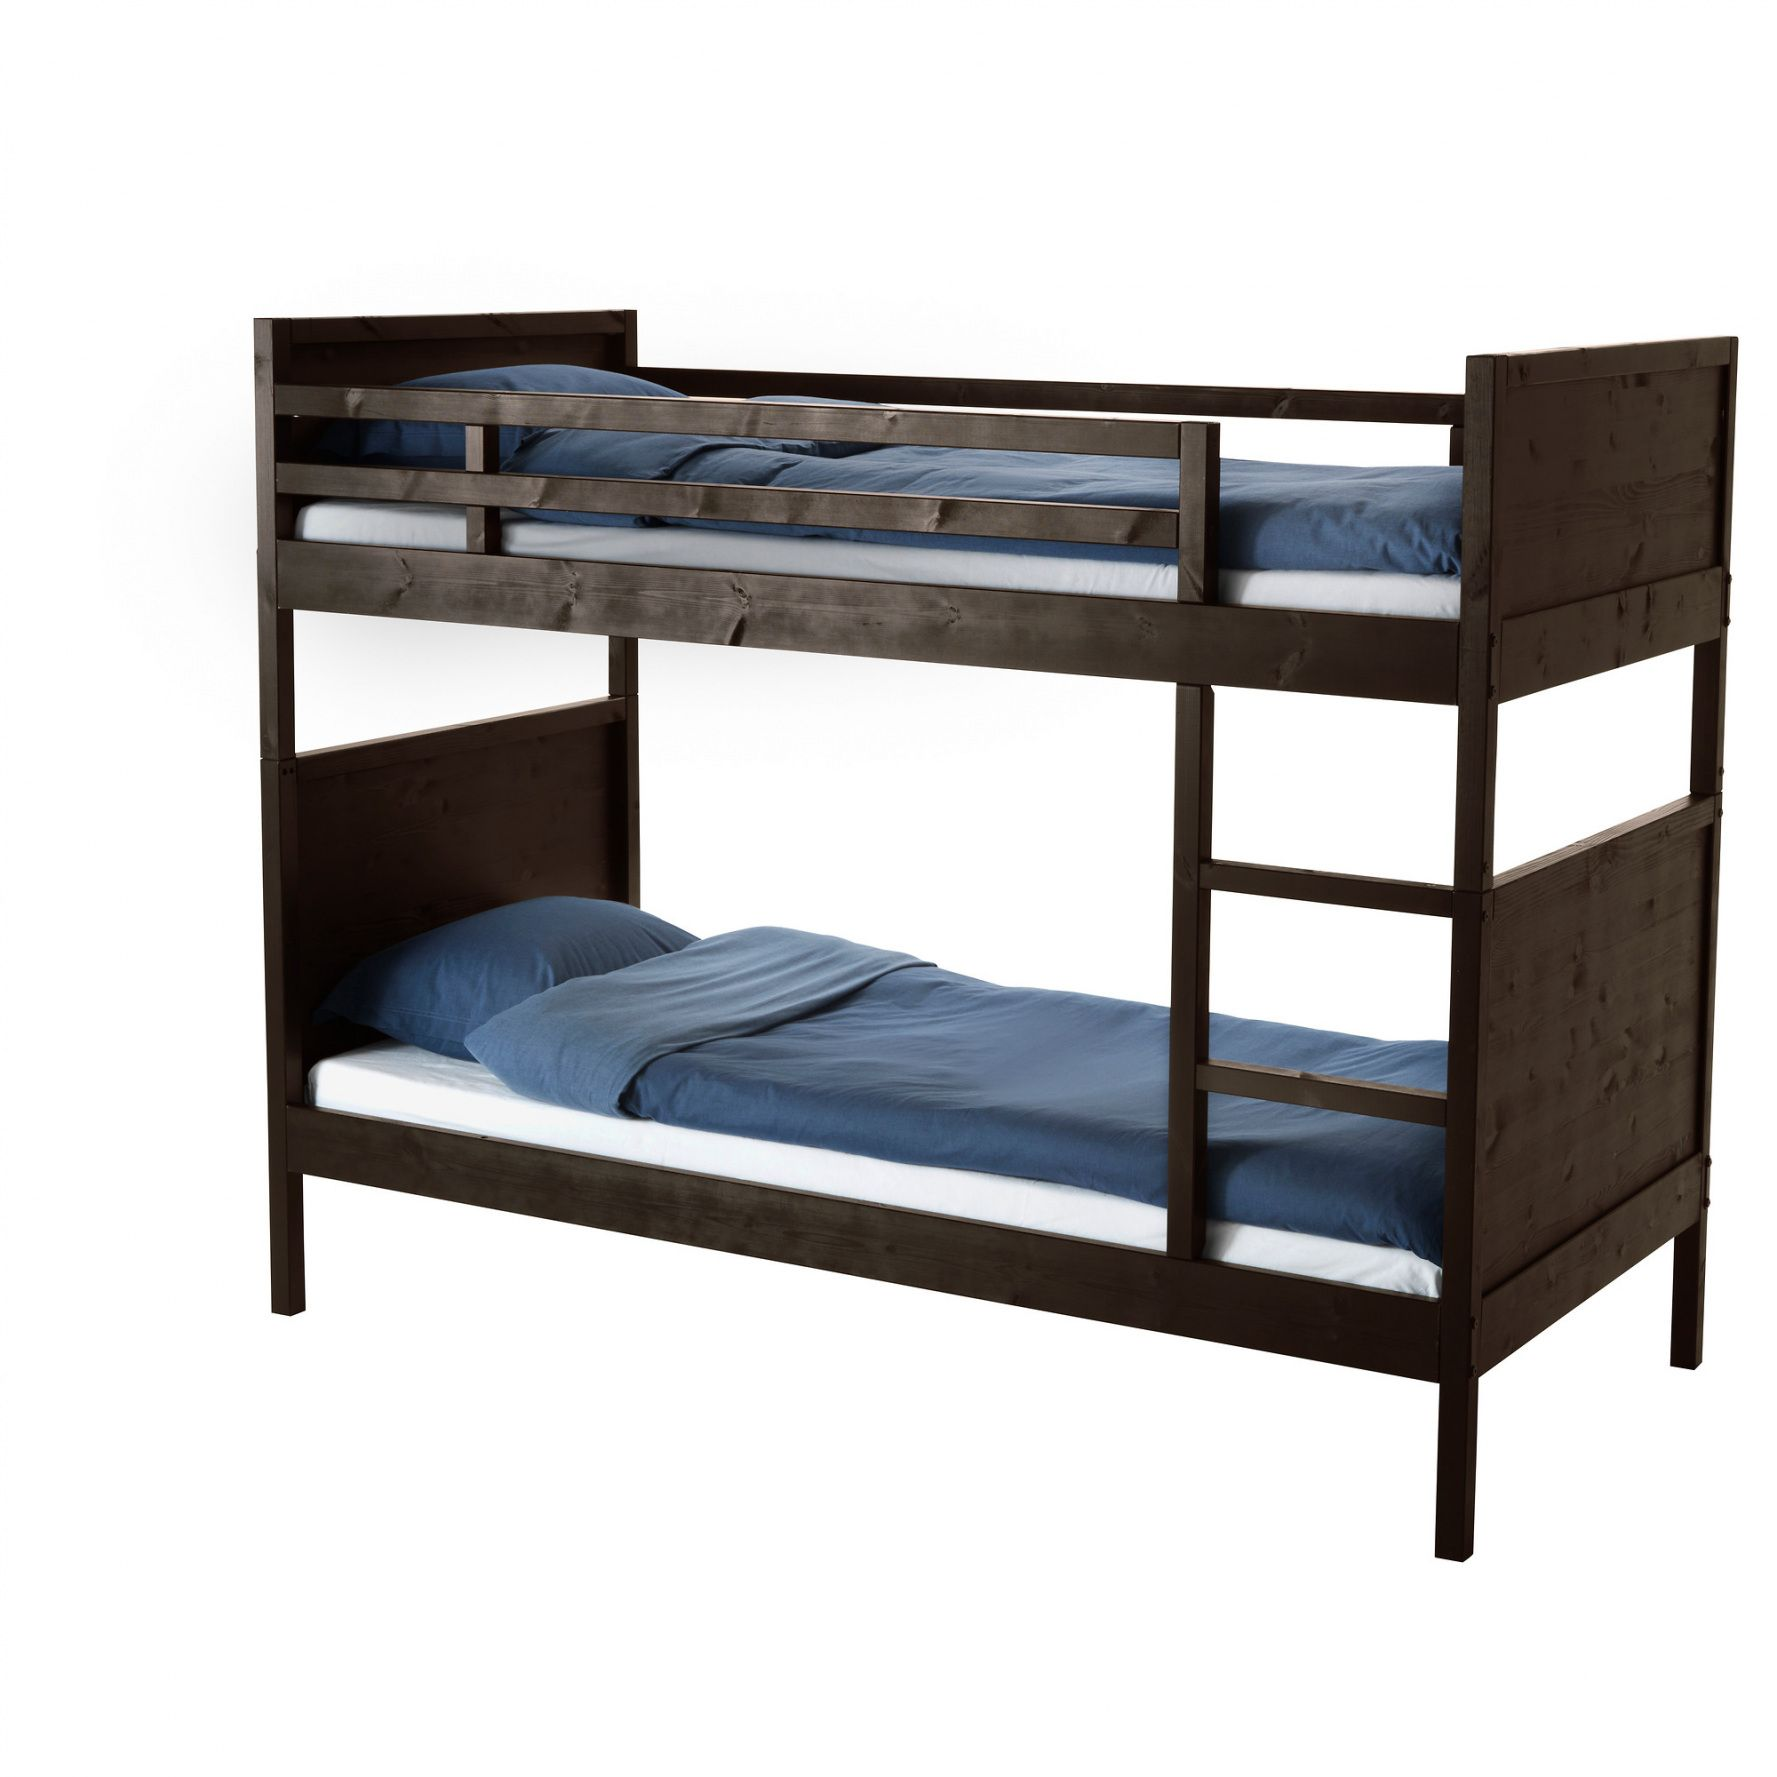 2019 bunk beds ikea uk - master bedroom interior design check more